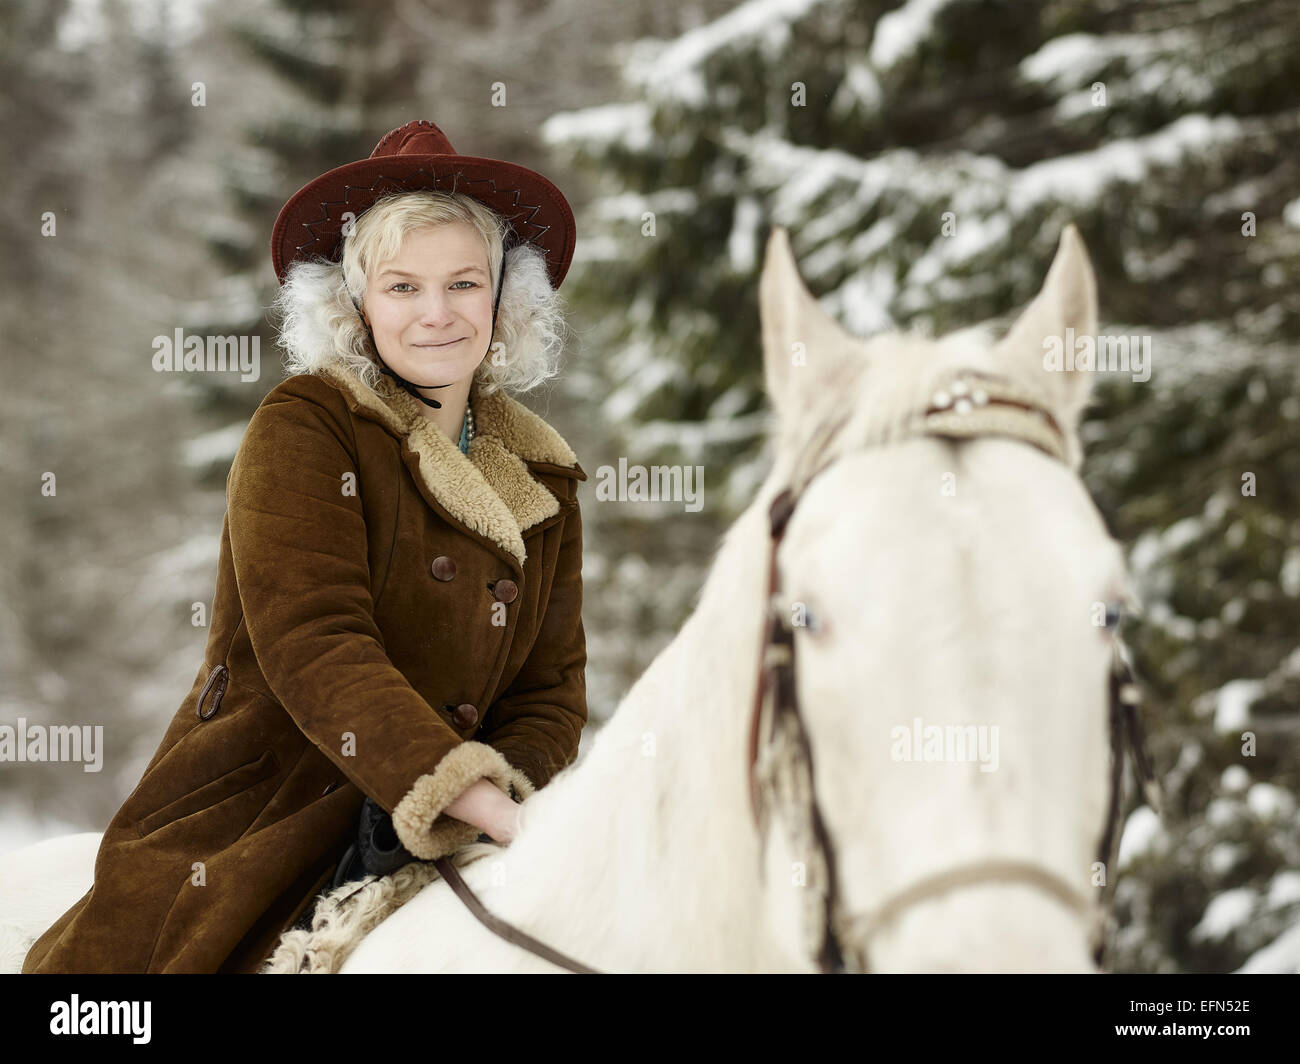 Attractive woman wearing a winter jacket and hat, she riding a white horse and she looks towards the camera Stock Photo